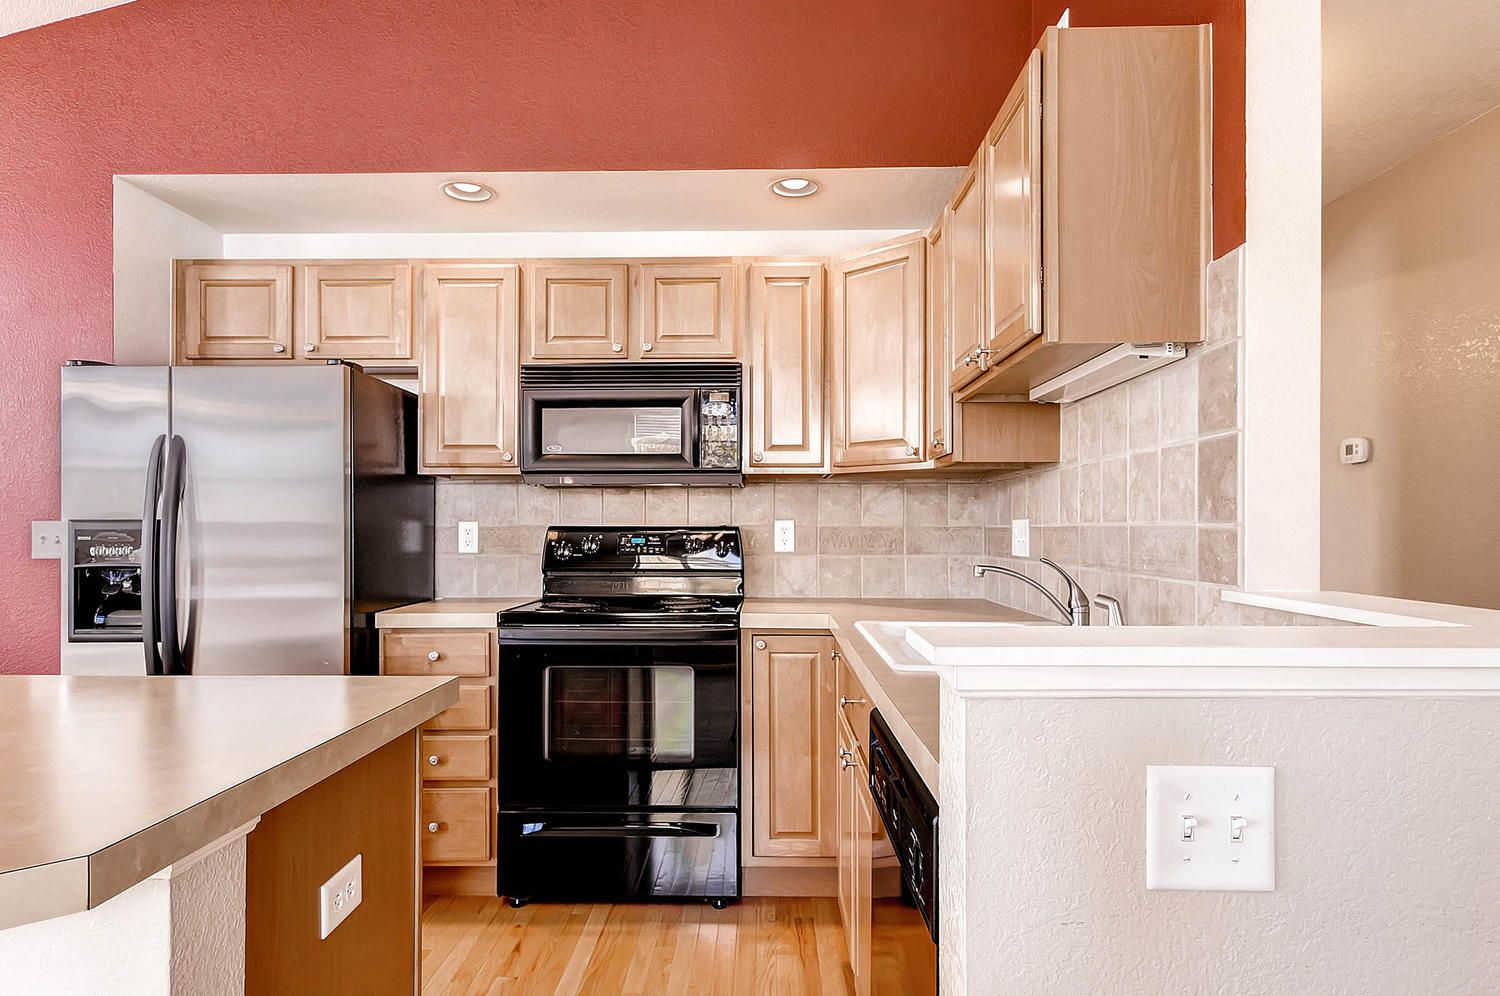 Check Out This Kitchen In This Awesome Loveland Colorado Condo Http Brivity Com Listings 1837 Gray S Peak Dr Loveland Co 80538 Loveland The Unit Kitchen